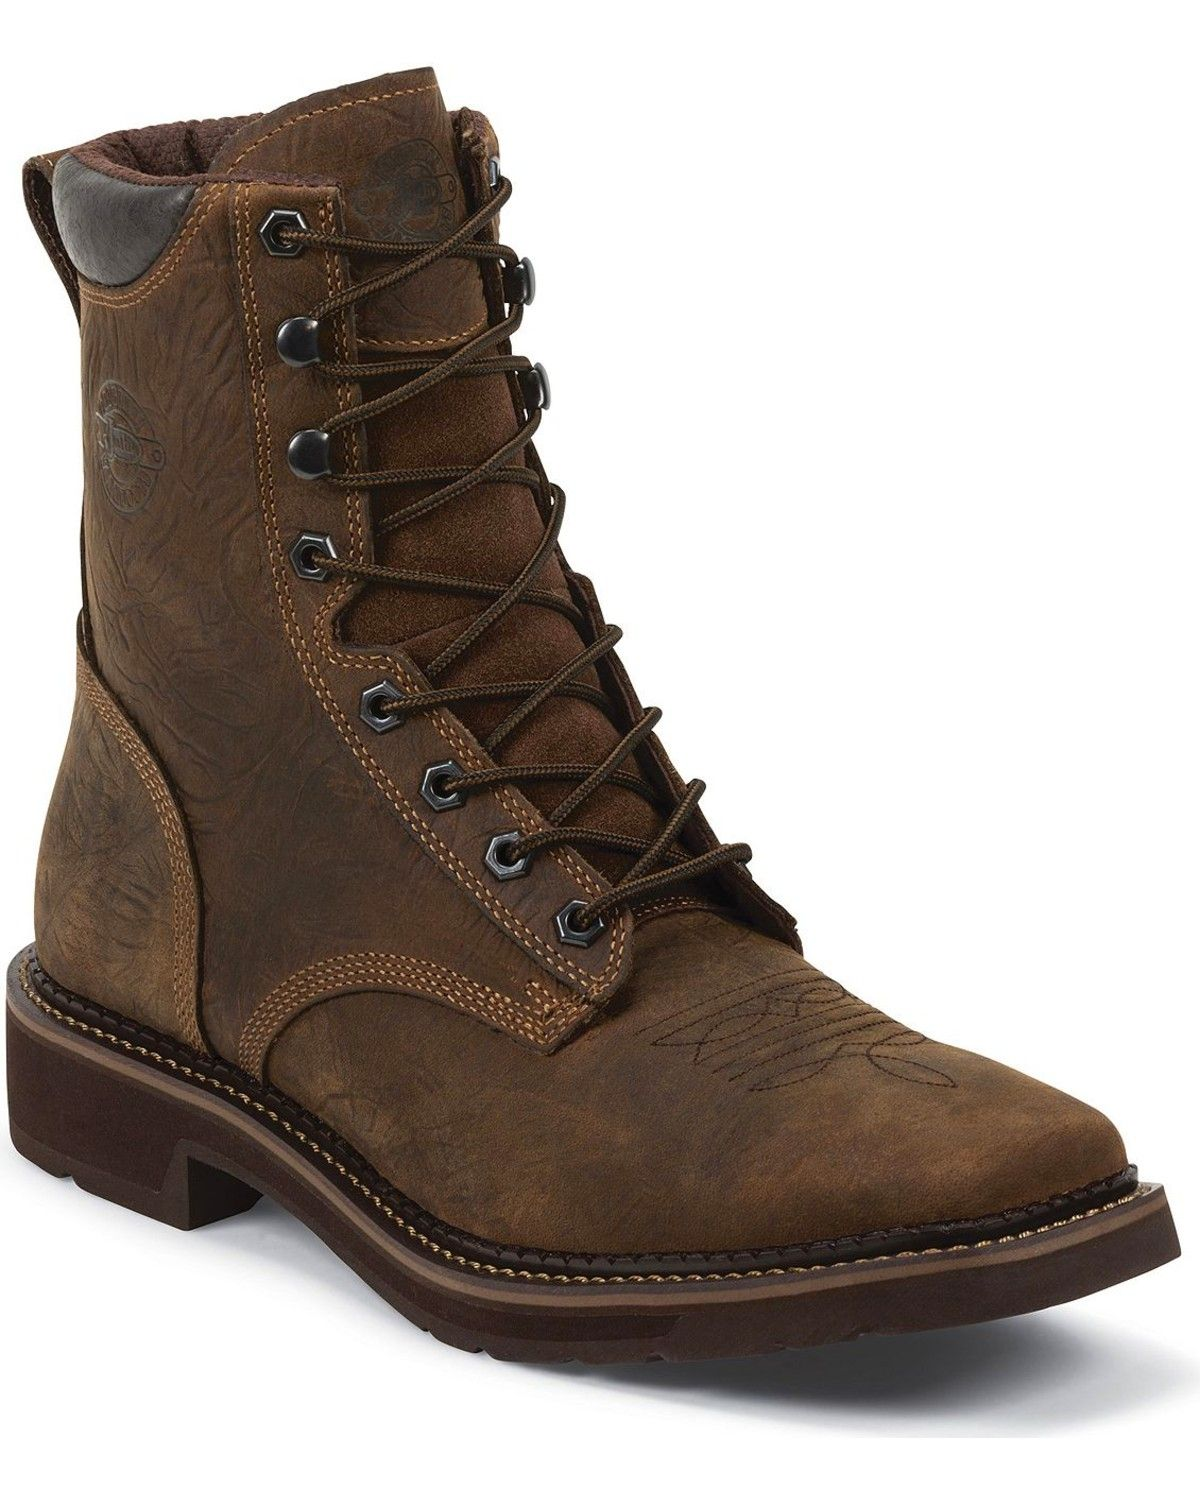 Justin Men S Driller 8 Waterproof Lace Up Work Boots Composite Toe Work Boots Mens Dress Boots Boots Women Fashion